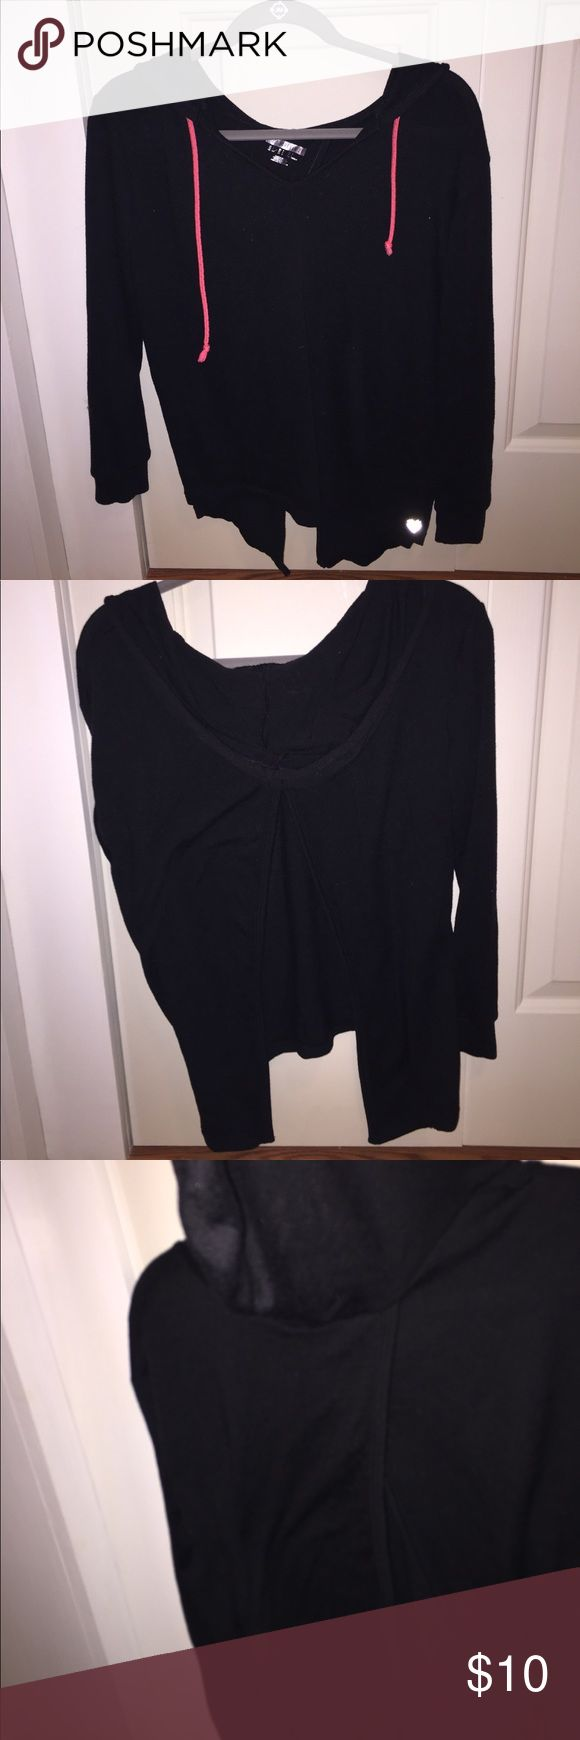 Black open back sweatshirt Forever 21 workout gear goes fashionable! The fun open back allows for a flirty sweatshirt. Great for casual hangout or a cute workout outfit. Forever 21 Tops Sweatshirts & Hoodies